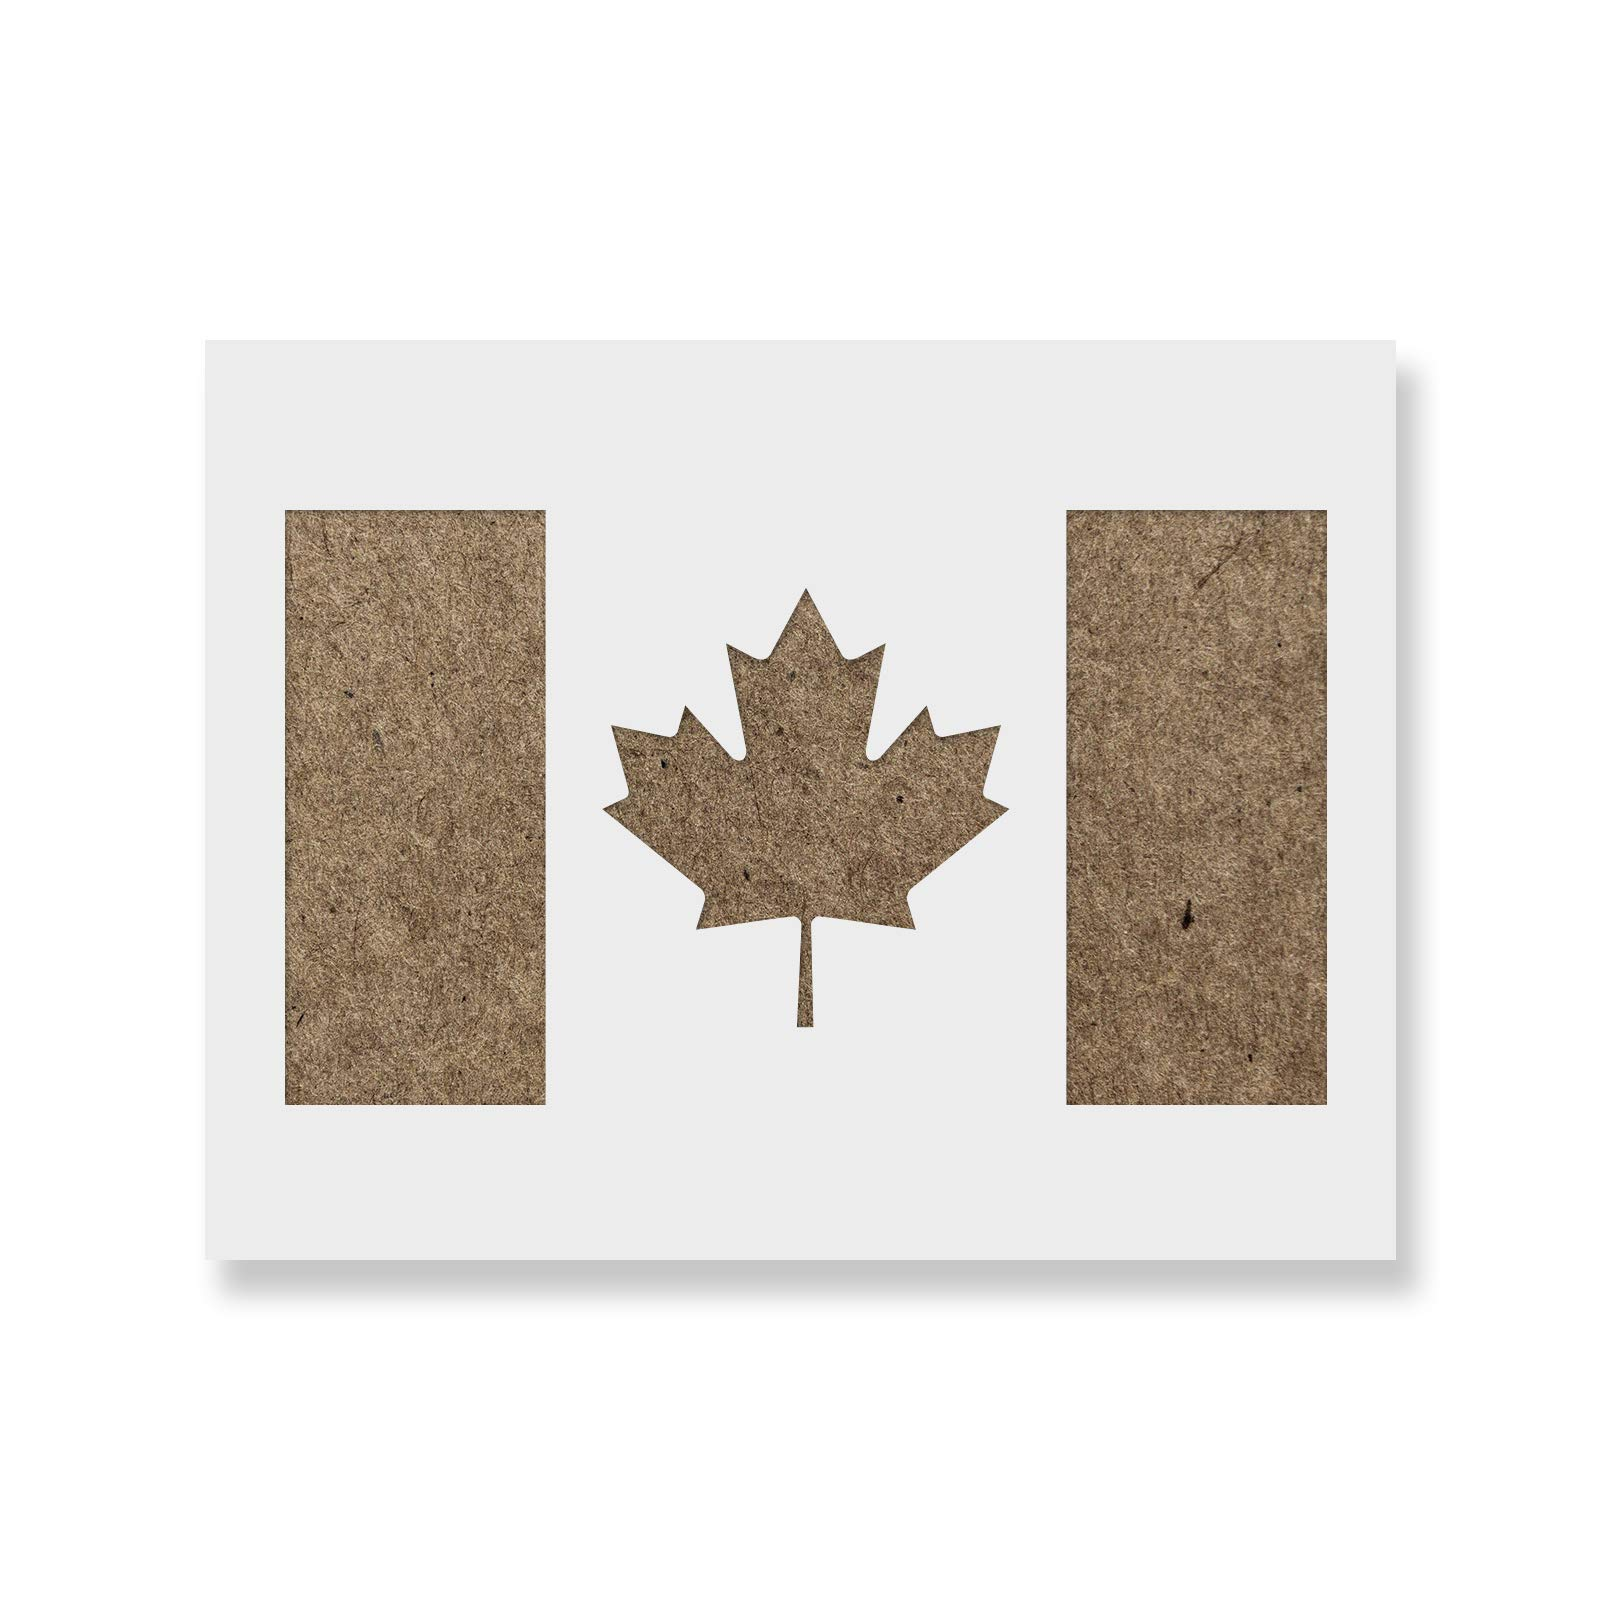 Canadian Flag Stencil Template - Reusable Stencil with Multiple Sizes Available